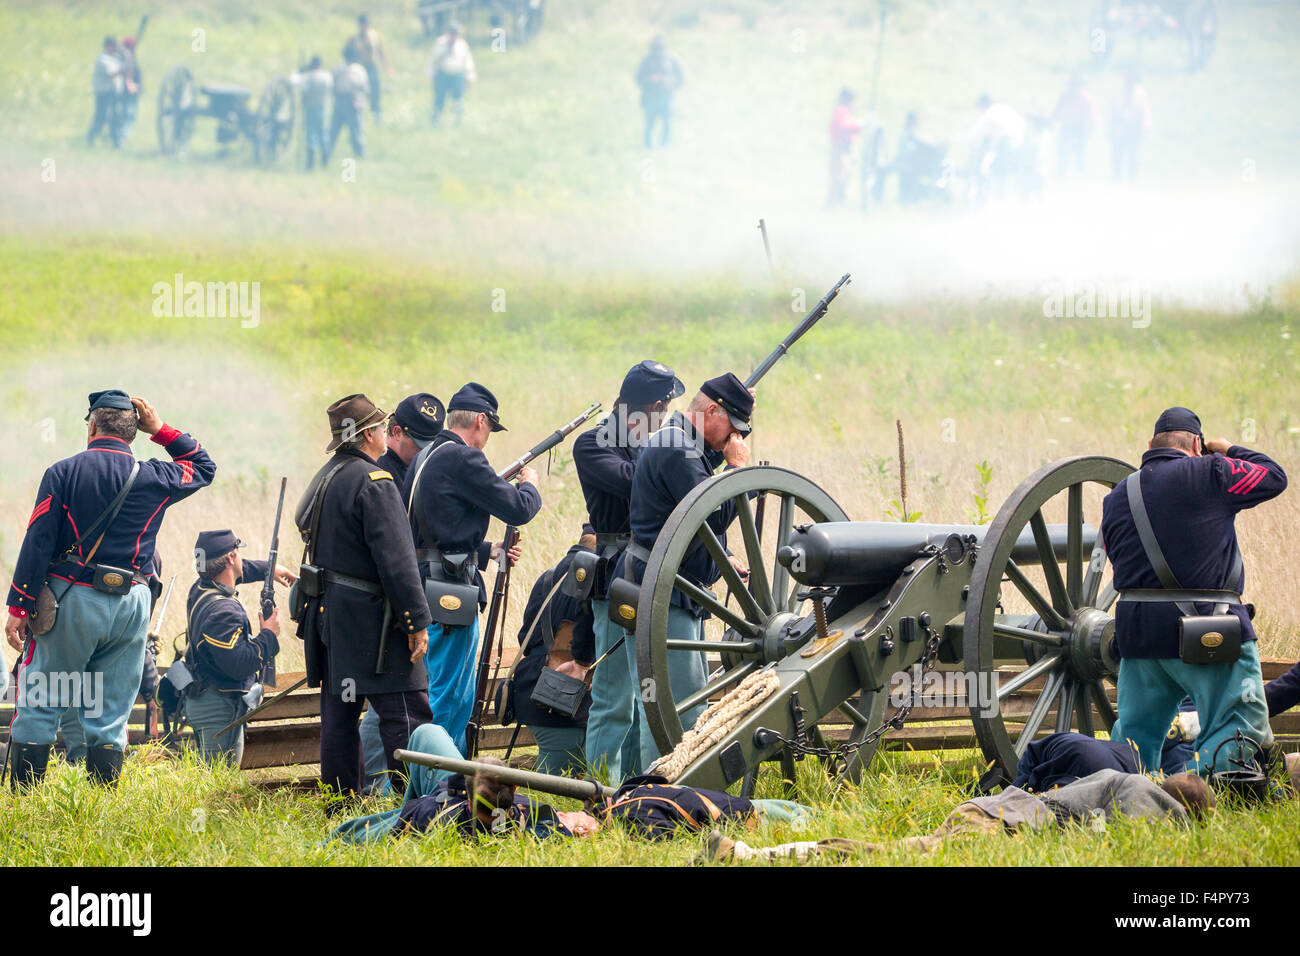 Unidentifiable union soldiers battle during the reenactment of the Civil War Battle of Gettysburg. - Stock Image